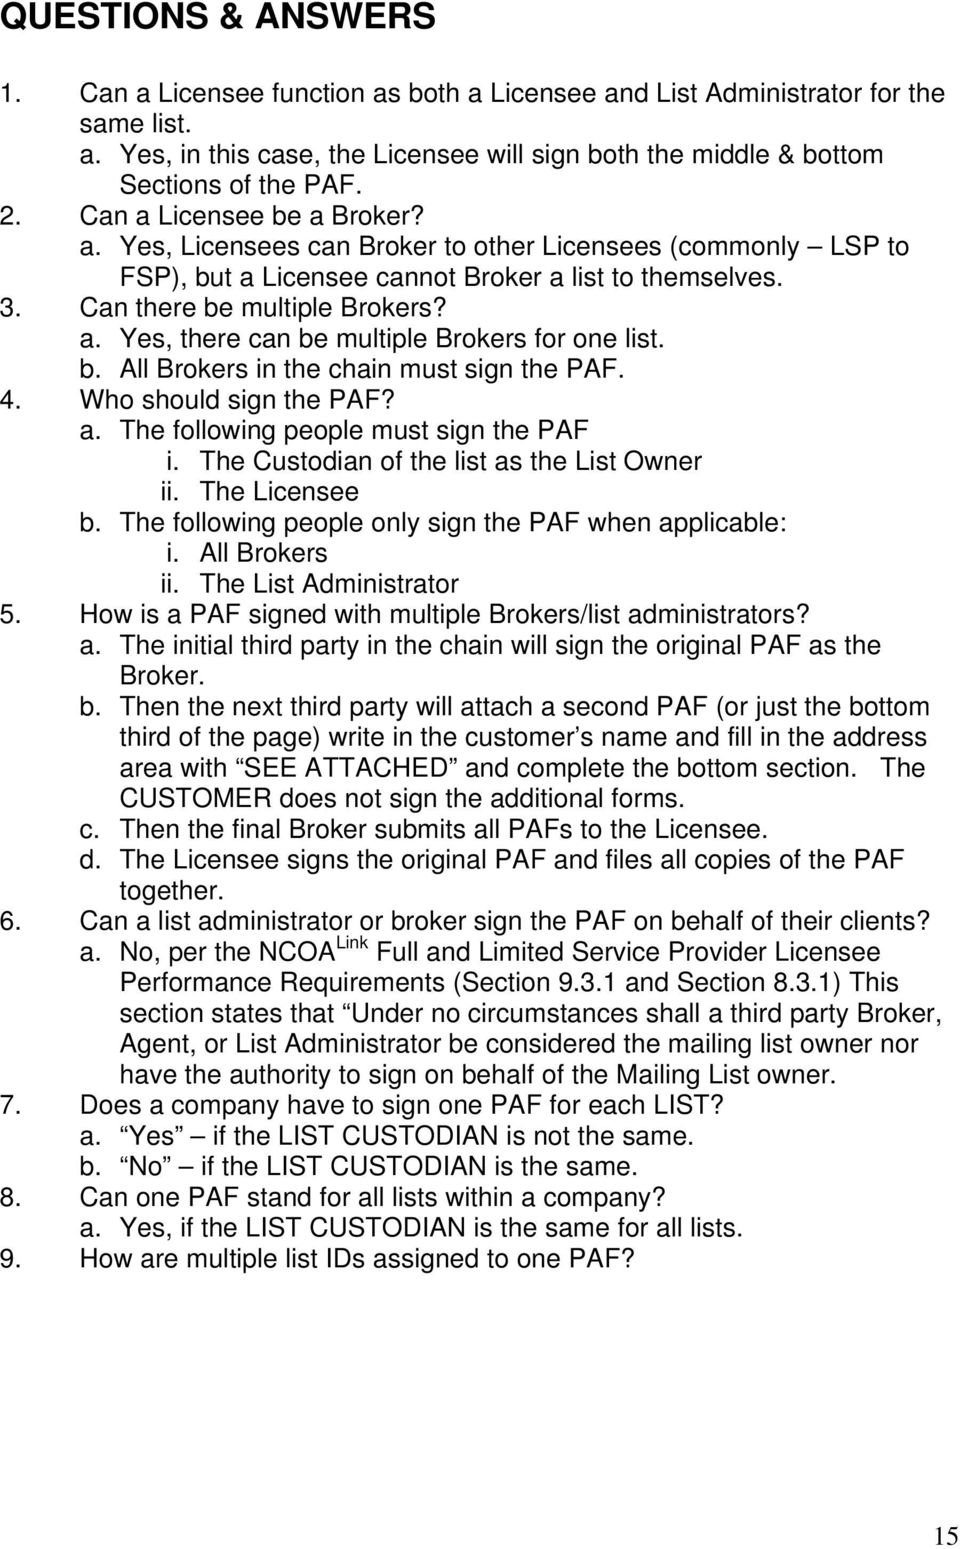 b. All Brokers in the chain must sign the PAF. 4. Who should sign the PAF? a. The following people must sign the PAF i. The Custodian of the list as the List Owner ii. The Licensee b.